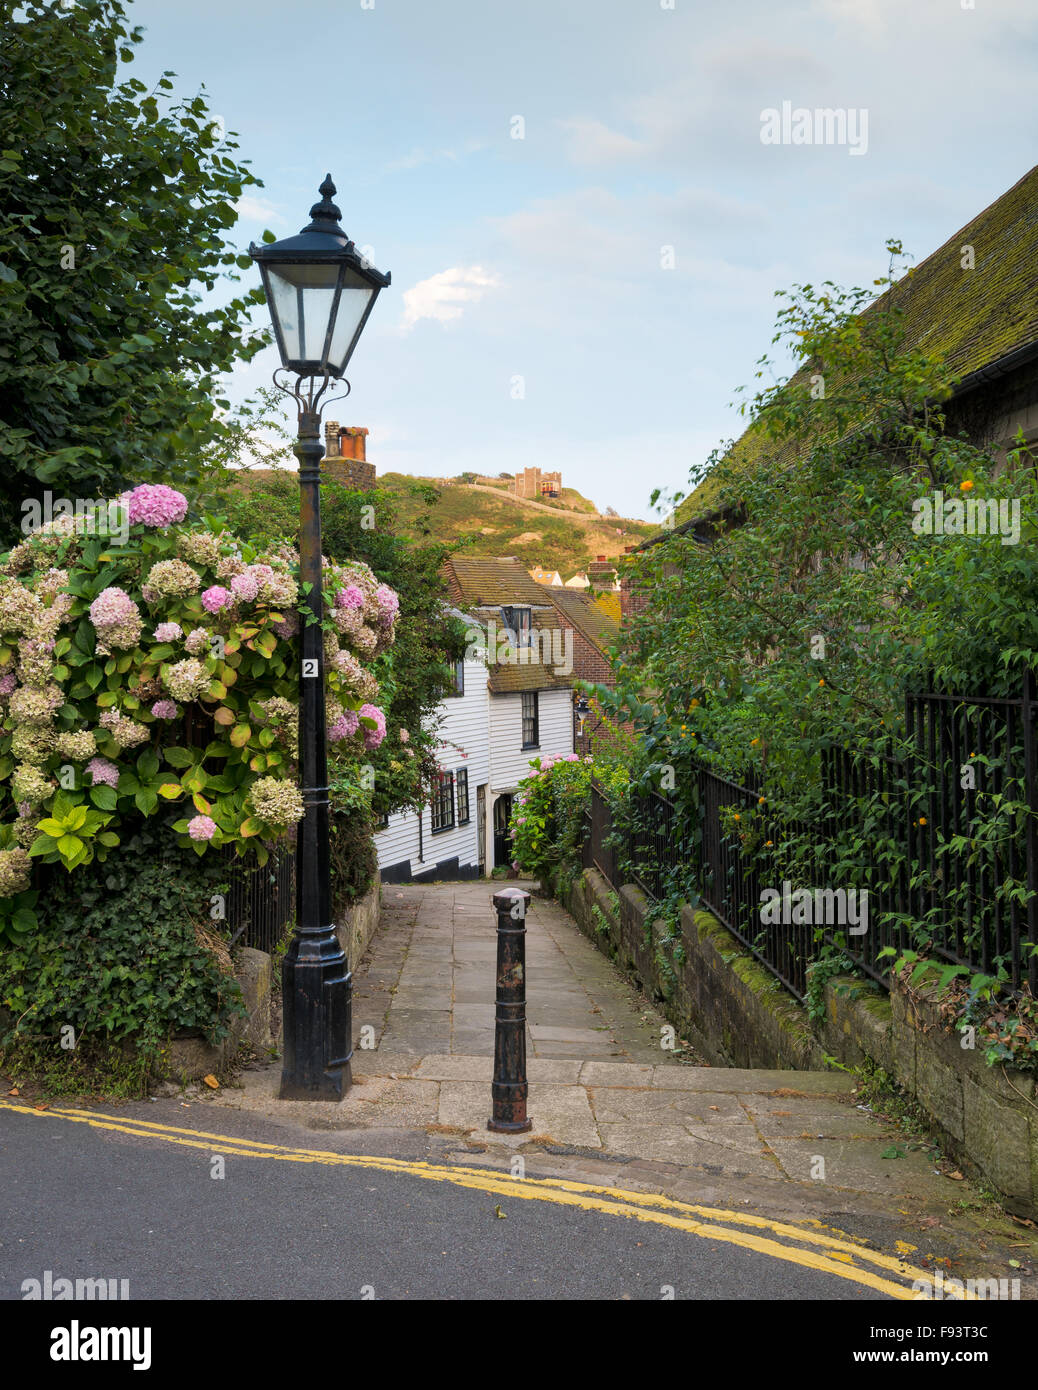 A view in Hastings Old Town, with the East Hill Cliff railway in the distance. - Stock Image